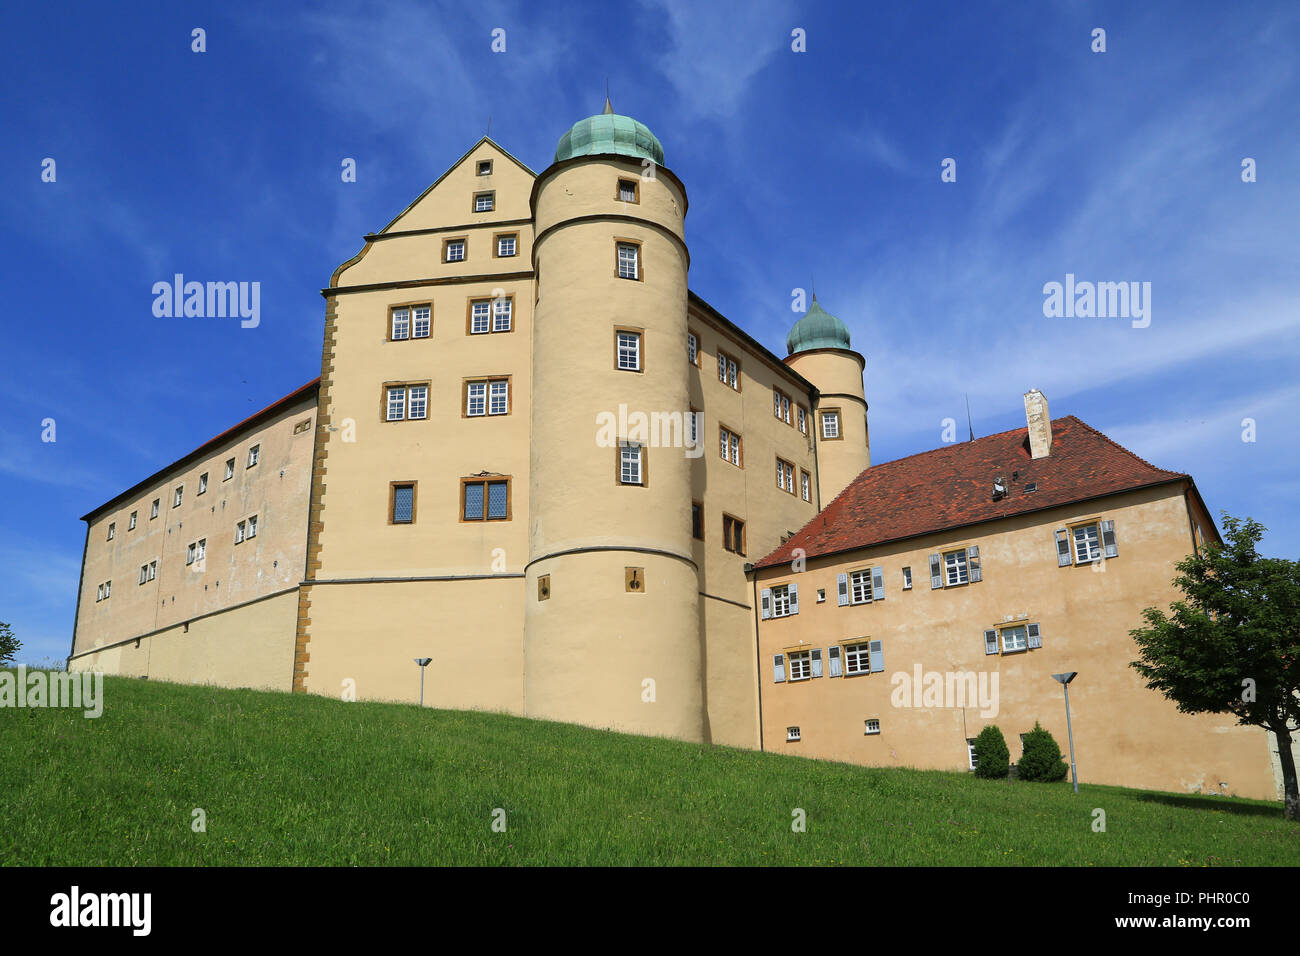 Lauchheim, Kapfenburg Castle, International Musics School Academy - Stock Image